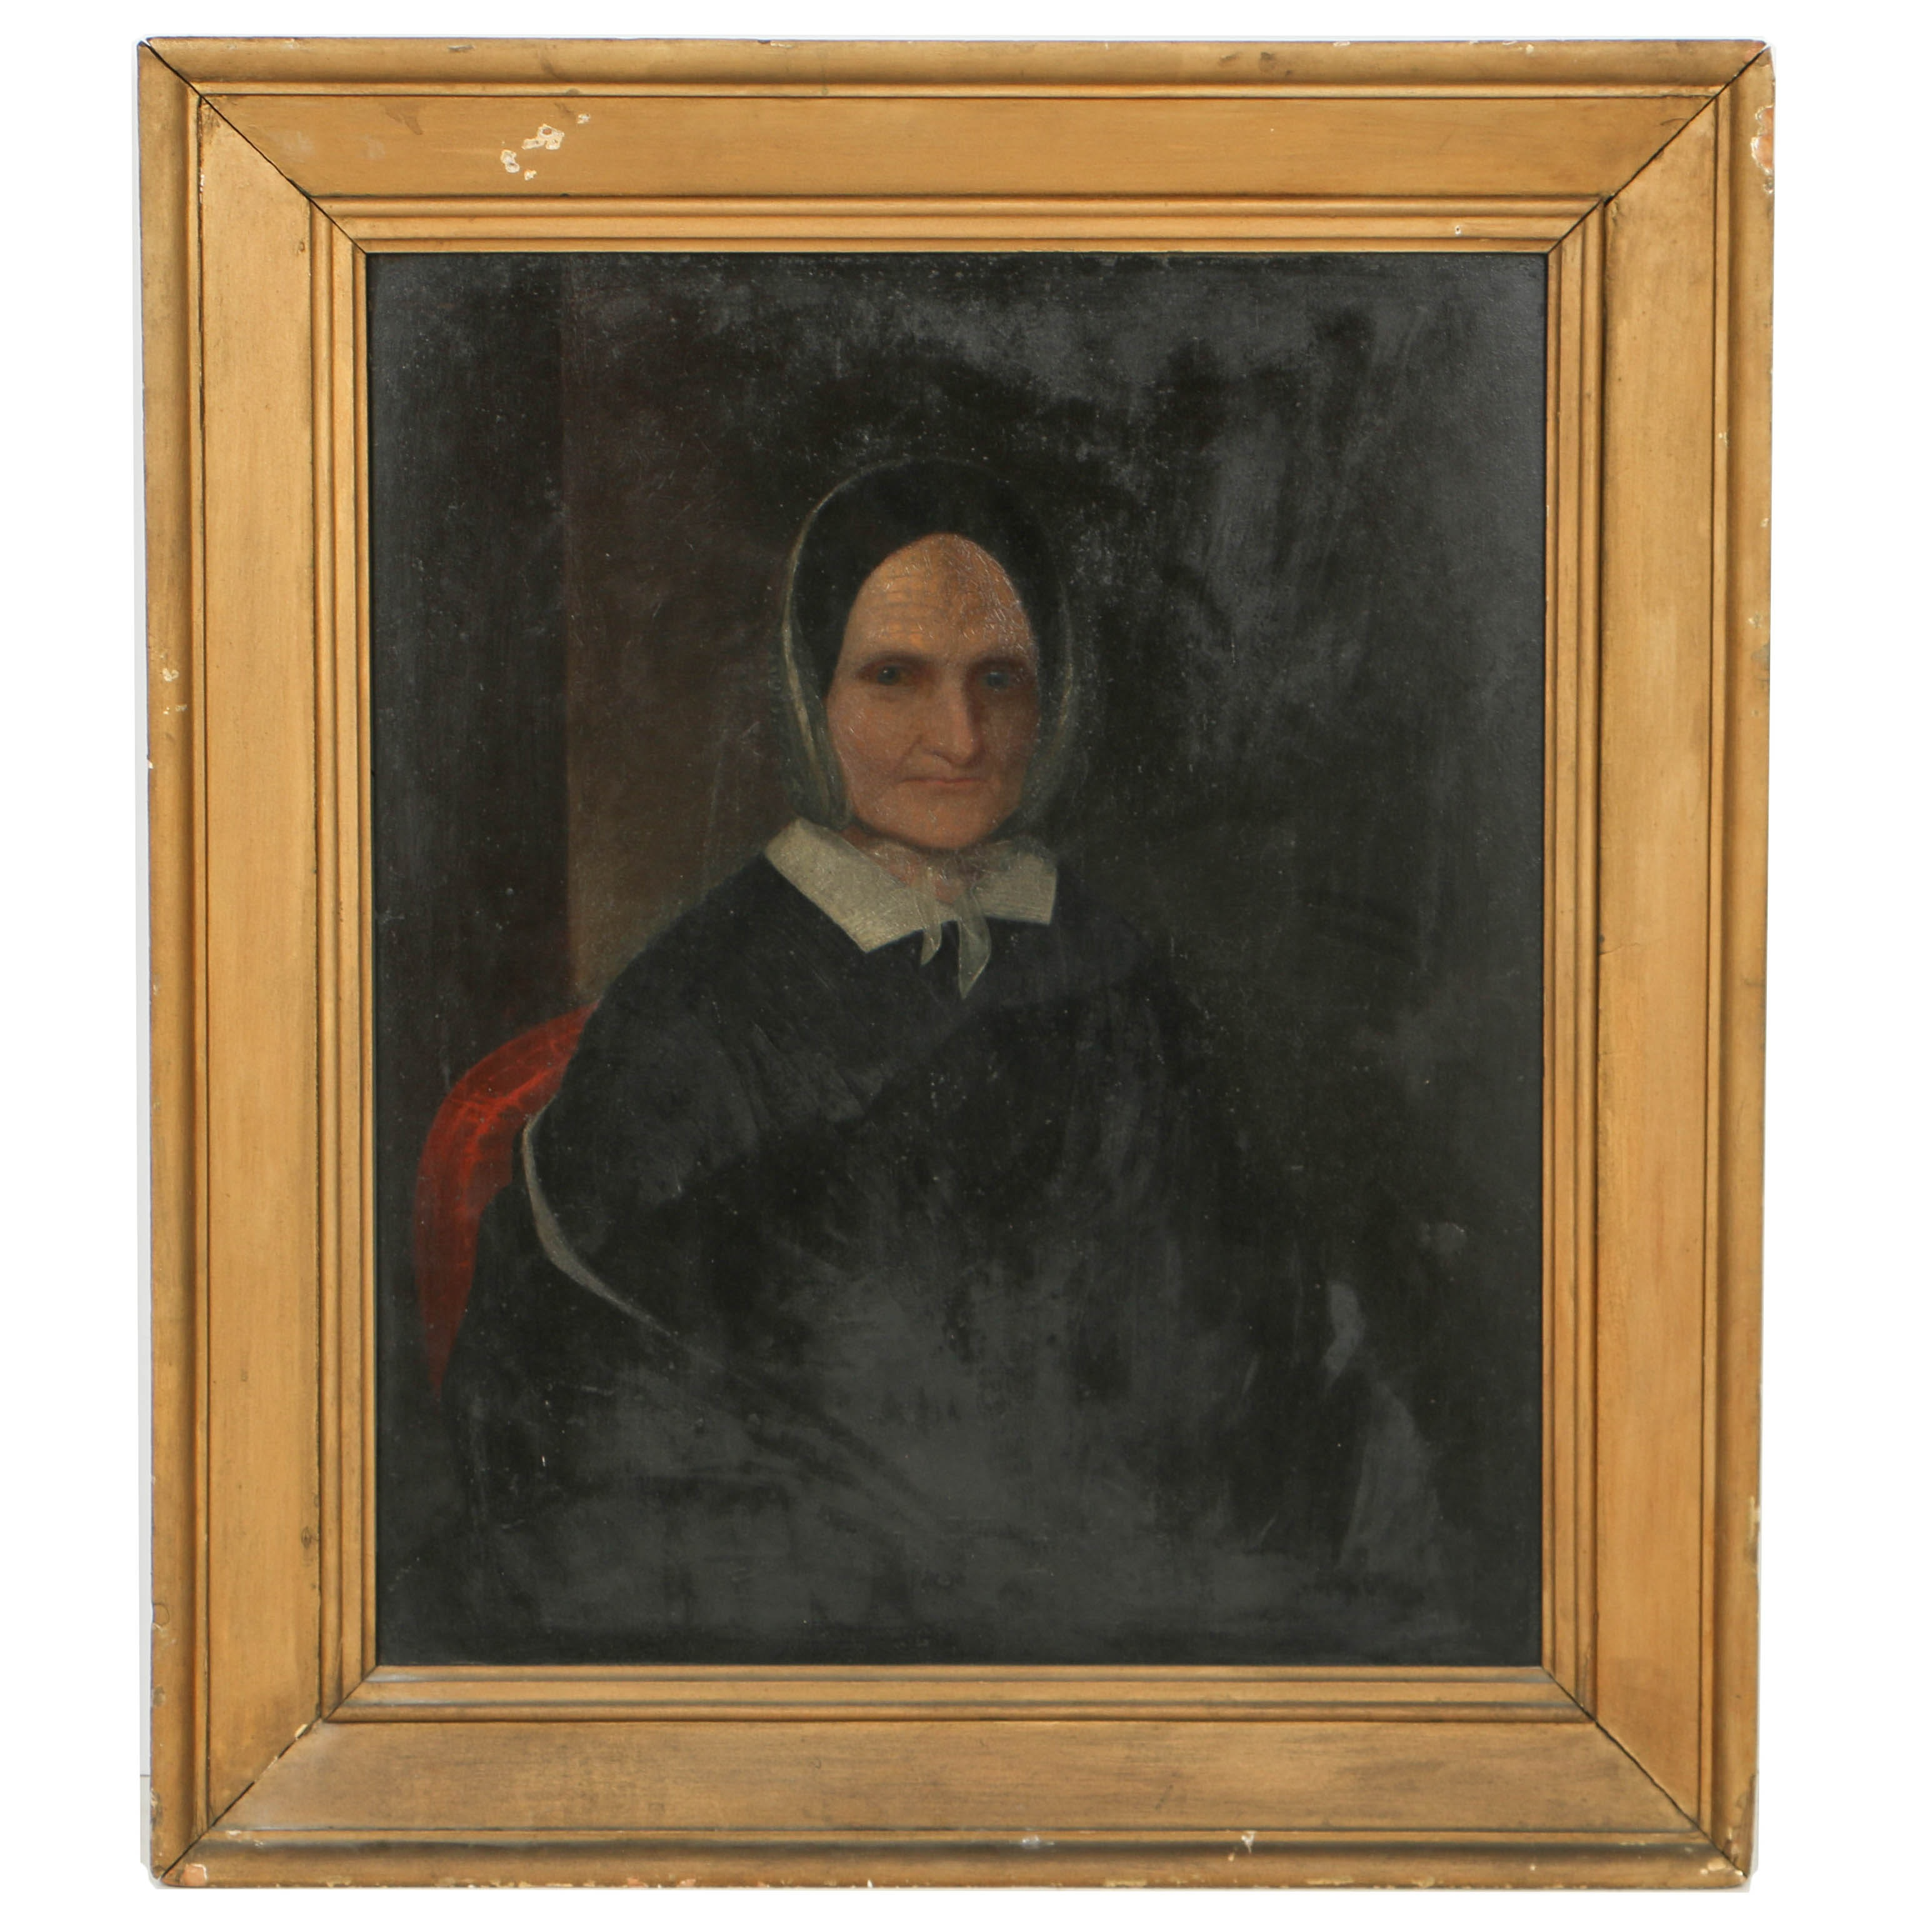 19th Century Folk Style Oil Portrait on Wood Panel of a Woman